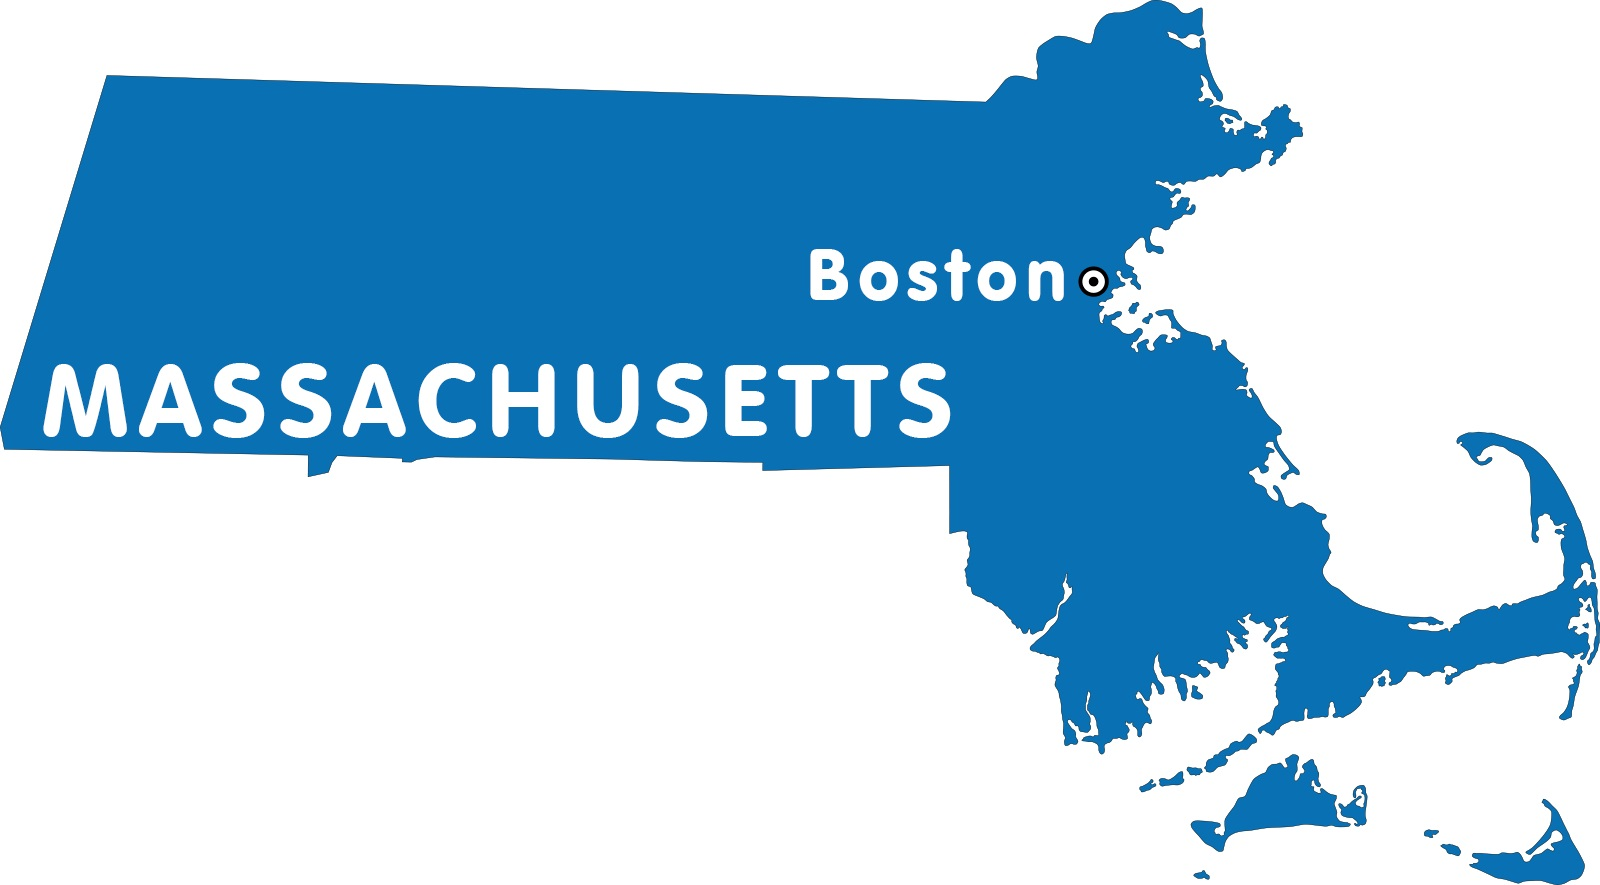 Massachusetts Capital Map | Large Printable High Resolution and Standard Map